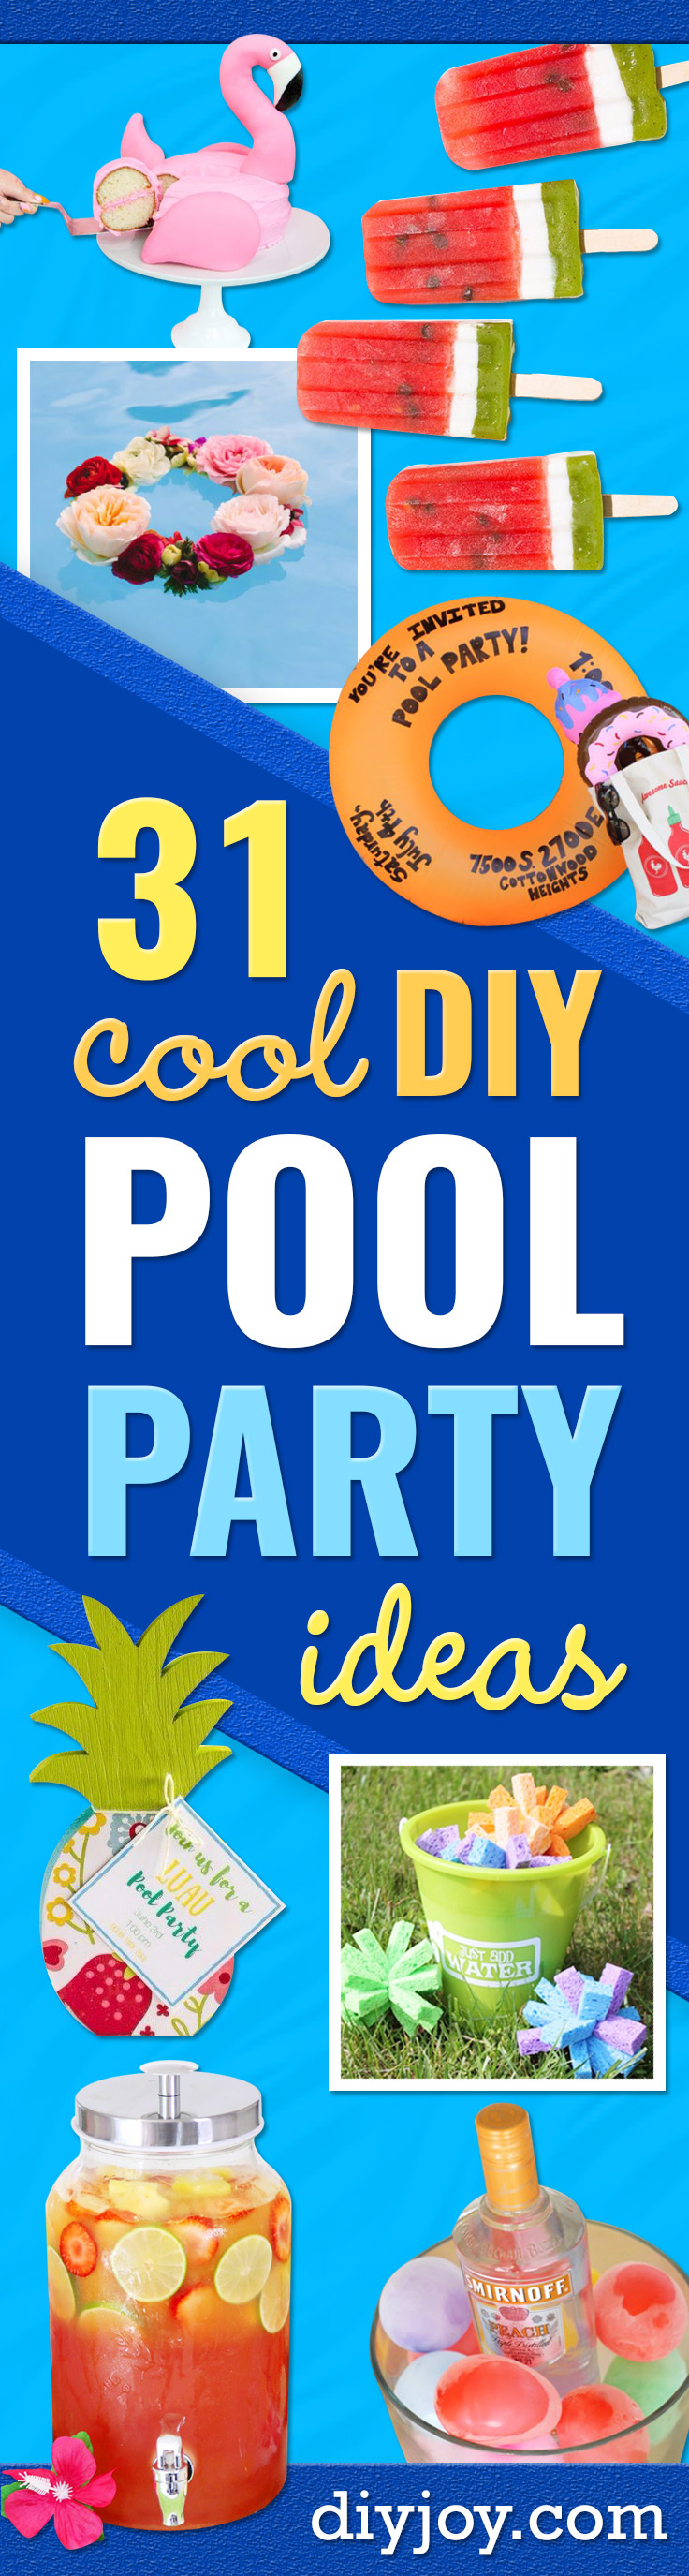 DIY Pool Party Ideas - Easy Decor Ideas for Pools - Best Pool Floats, Coolers, Party Foods and Drinks - Entertaining on A Budget - Step by Step Tutorials and Instructions - Summer Games and Fun Backyard Parties